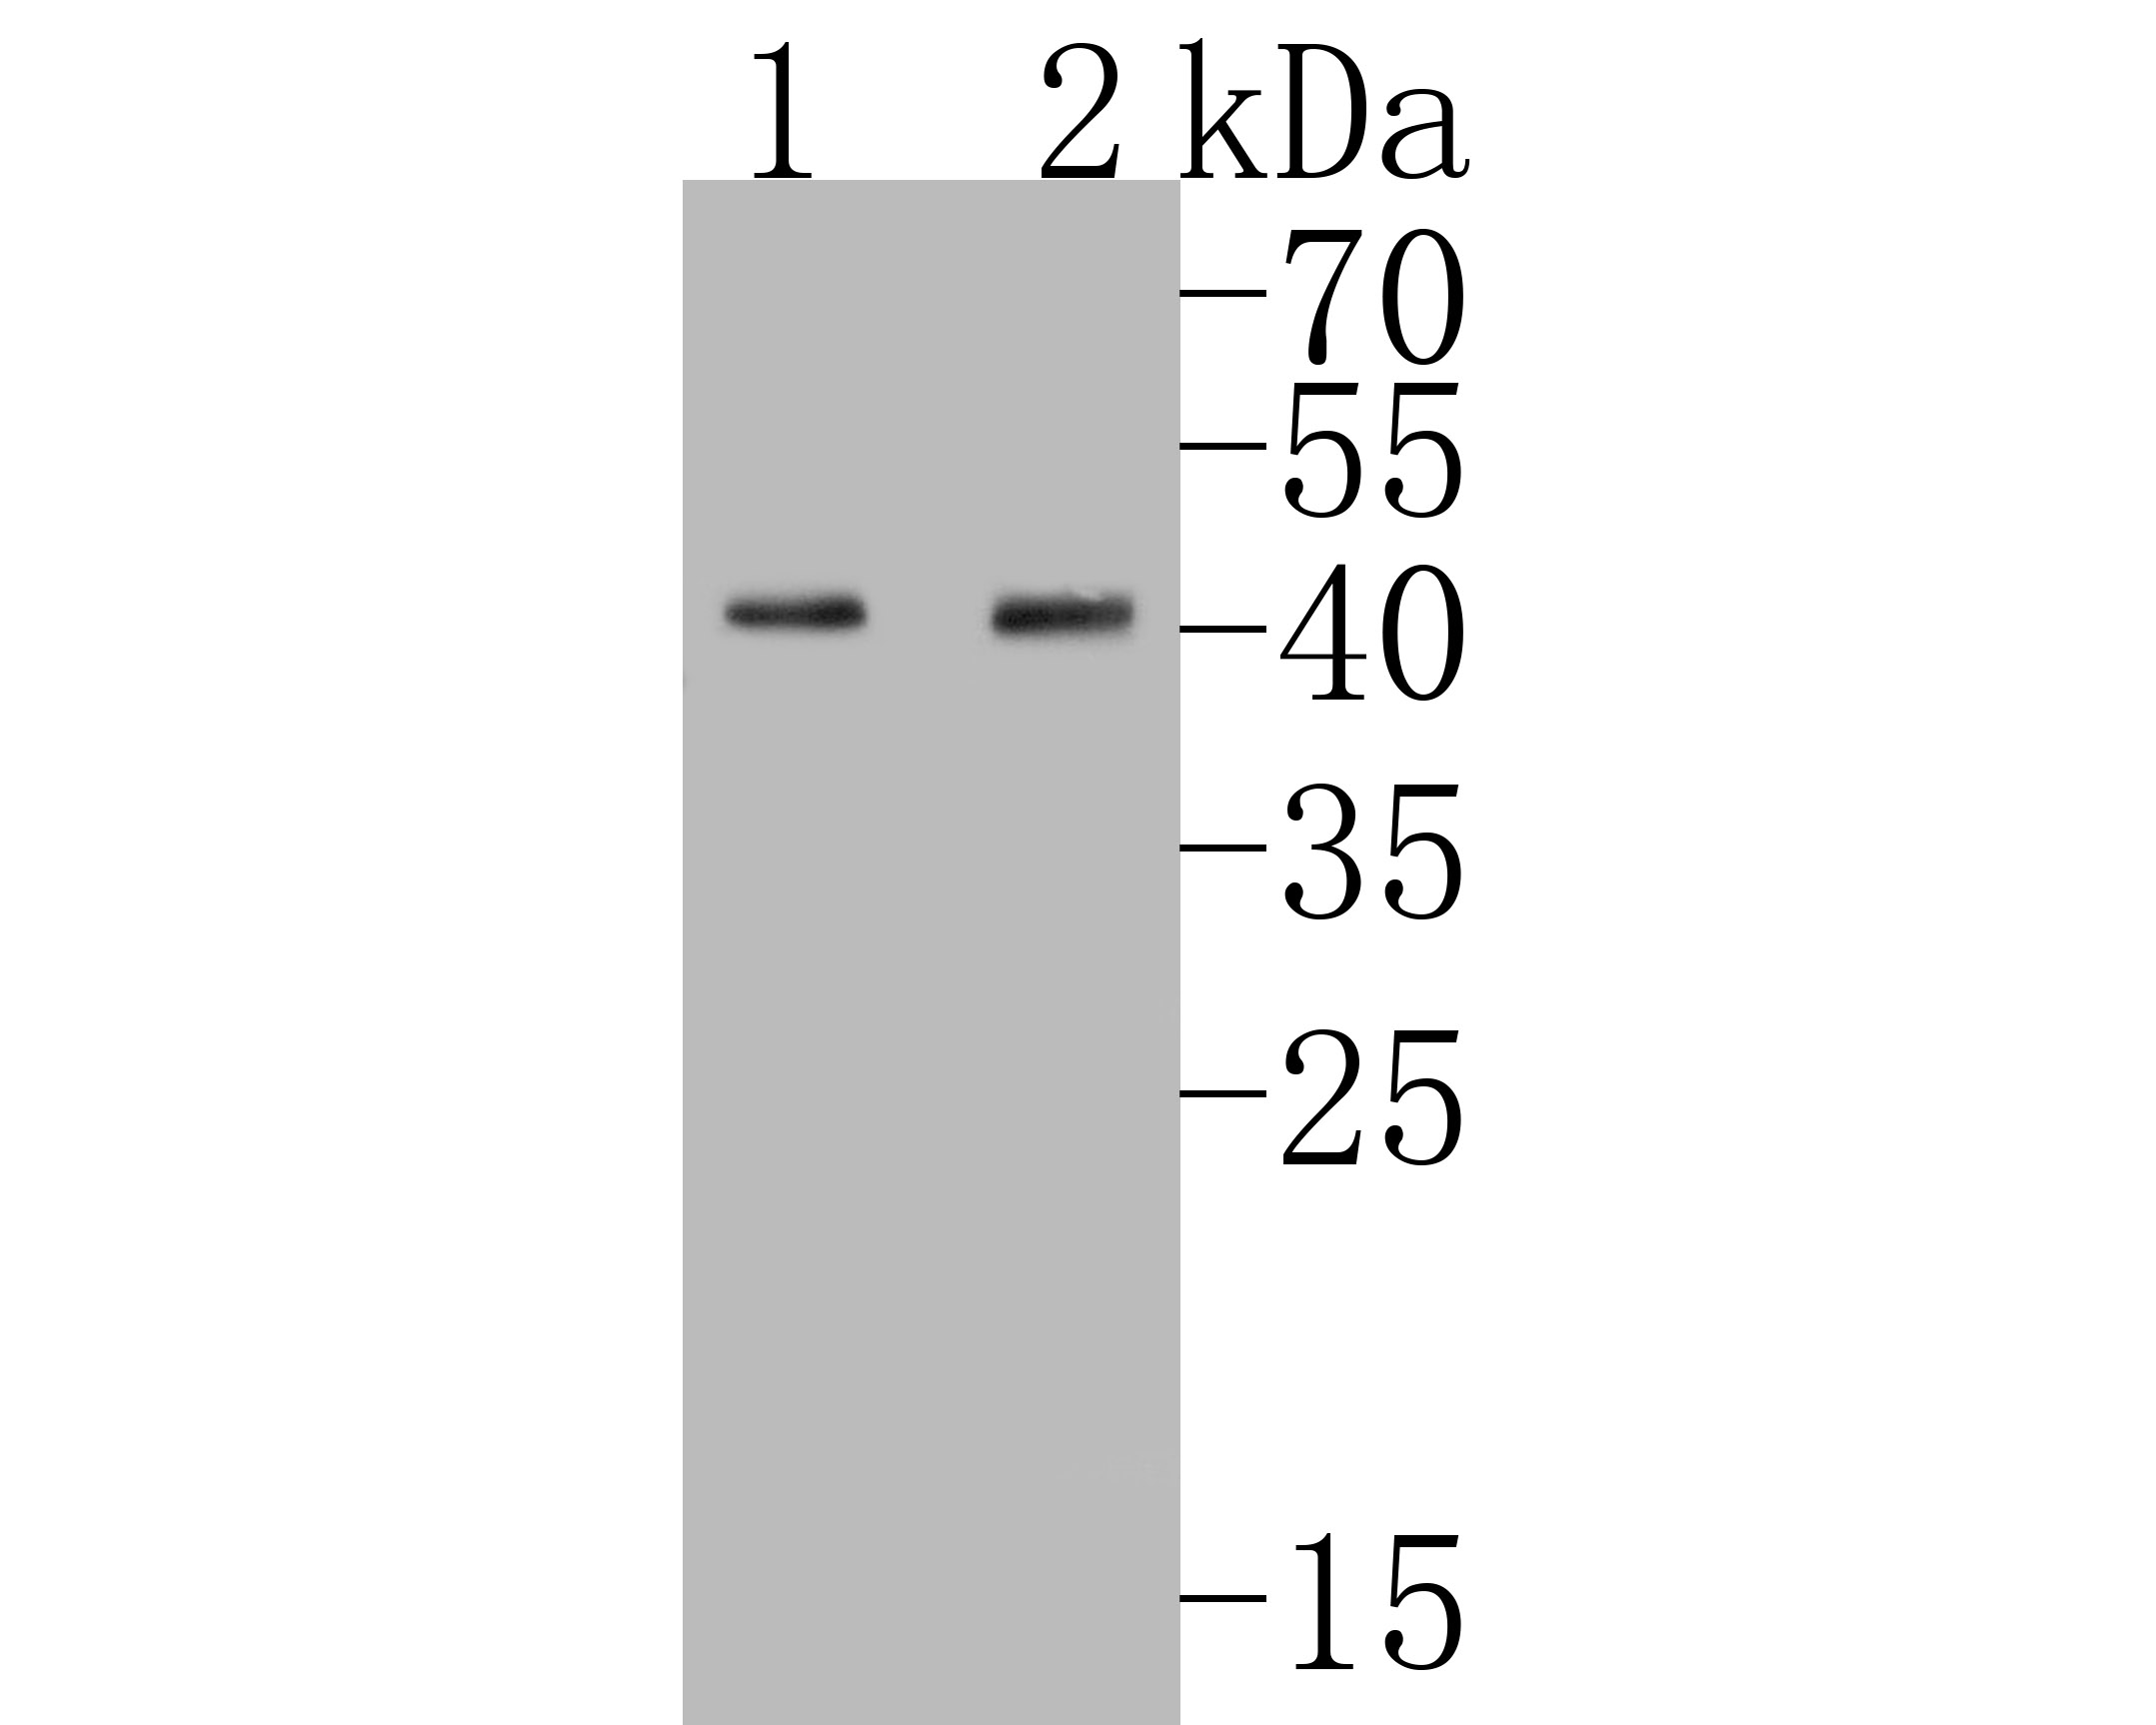 Western blot analysis of Nanog on different lysates. Proteins were transferred to a PVDF membrane and blocked with 5% BSA in PBS for 1 hour at room temperature. The primary antibody (ET1610-2, 1/500) was used in 5% BSA at room temperature for 2 hours. Goat Anti-Rabbit IgG - HRP Secondary Antibody (HA1001) at 1:5,000 dilution was used for 1 hour at room temperature.<br /> Positive control: <br /> Lane 1: F9 cell lysate<br /> Lane 2: mouse testis tissue lysate